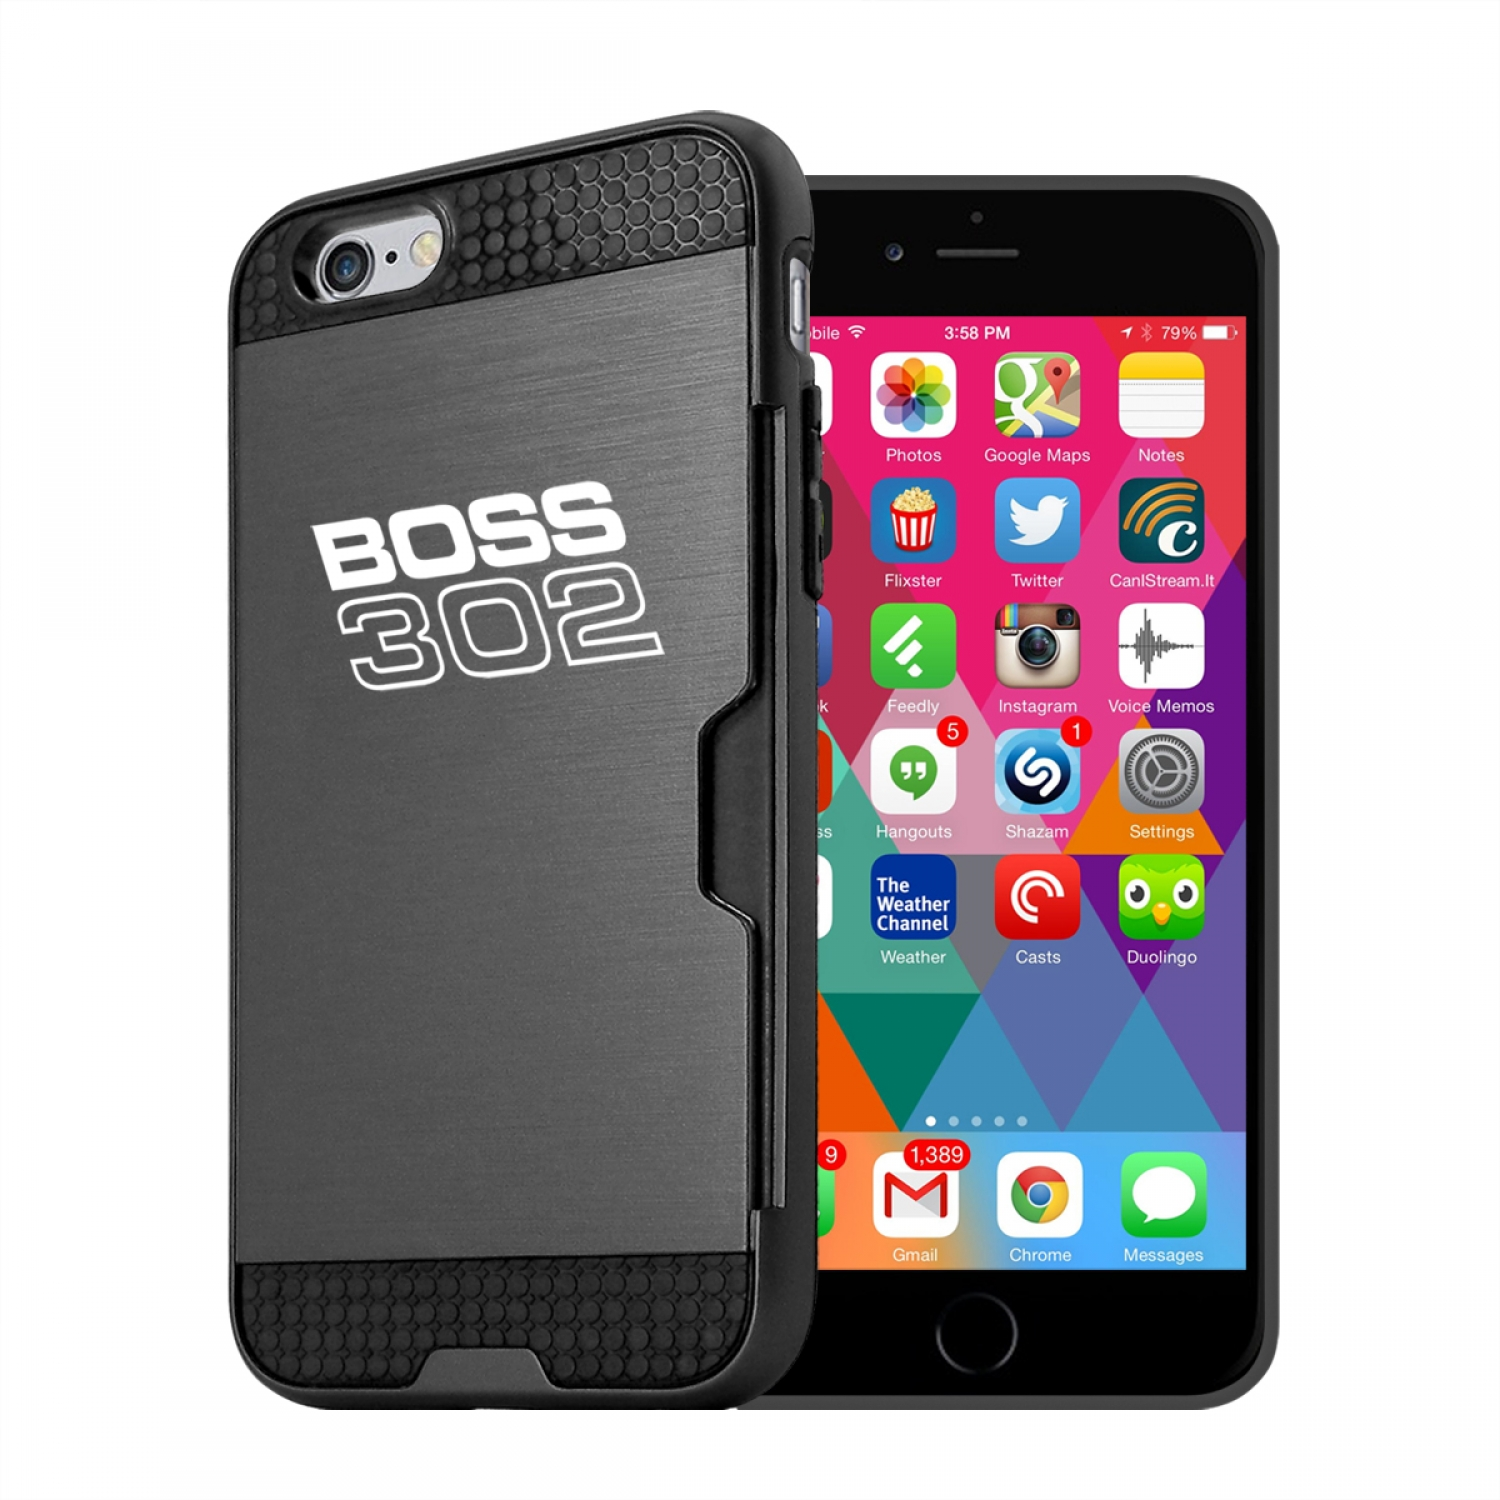 Ford Mustang Boss 302 iPhone 6 6s Ultra Thin TPU Black Phone Case with Credit Card Slot Wallet